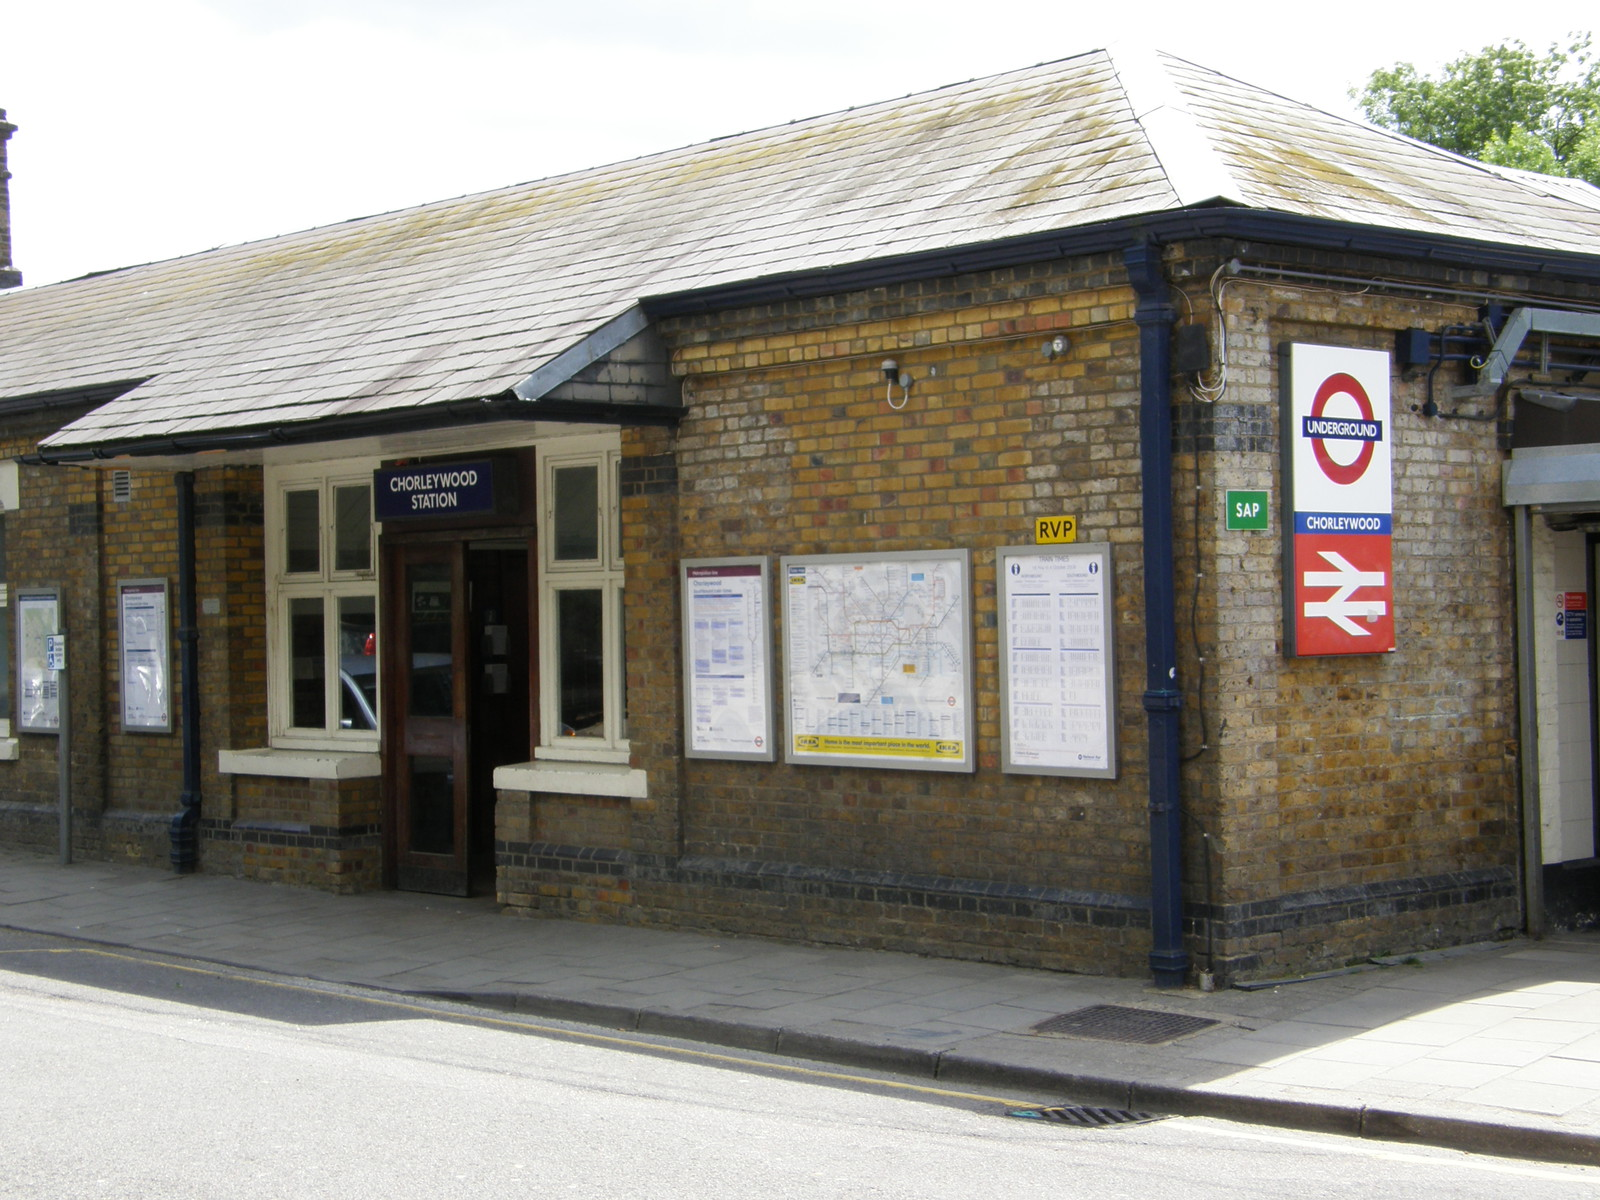 Chorleywood station